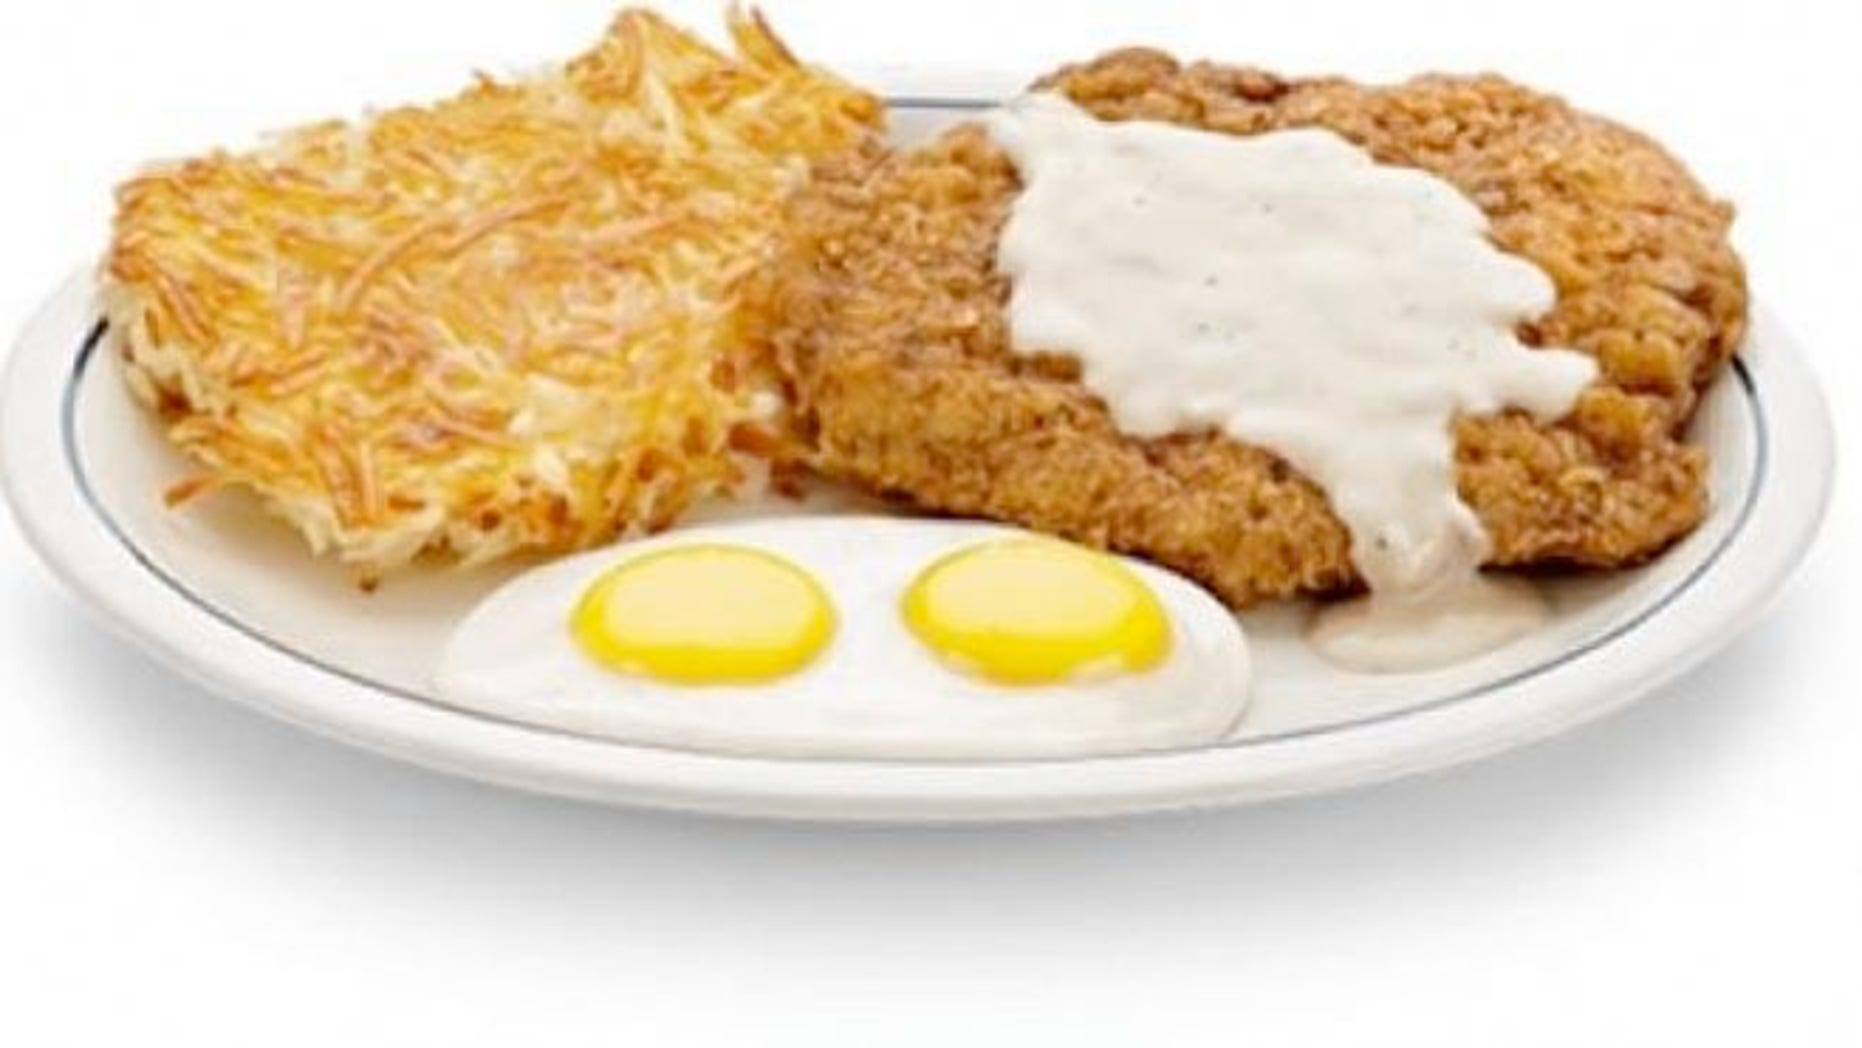 Ihops Country Fried Steak And Eggs Breakfast Has As Many Calories And Saturated Fat Grams As